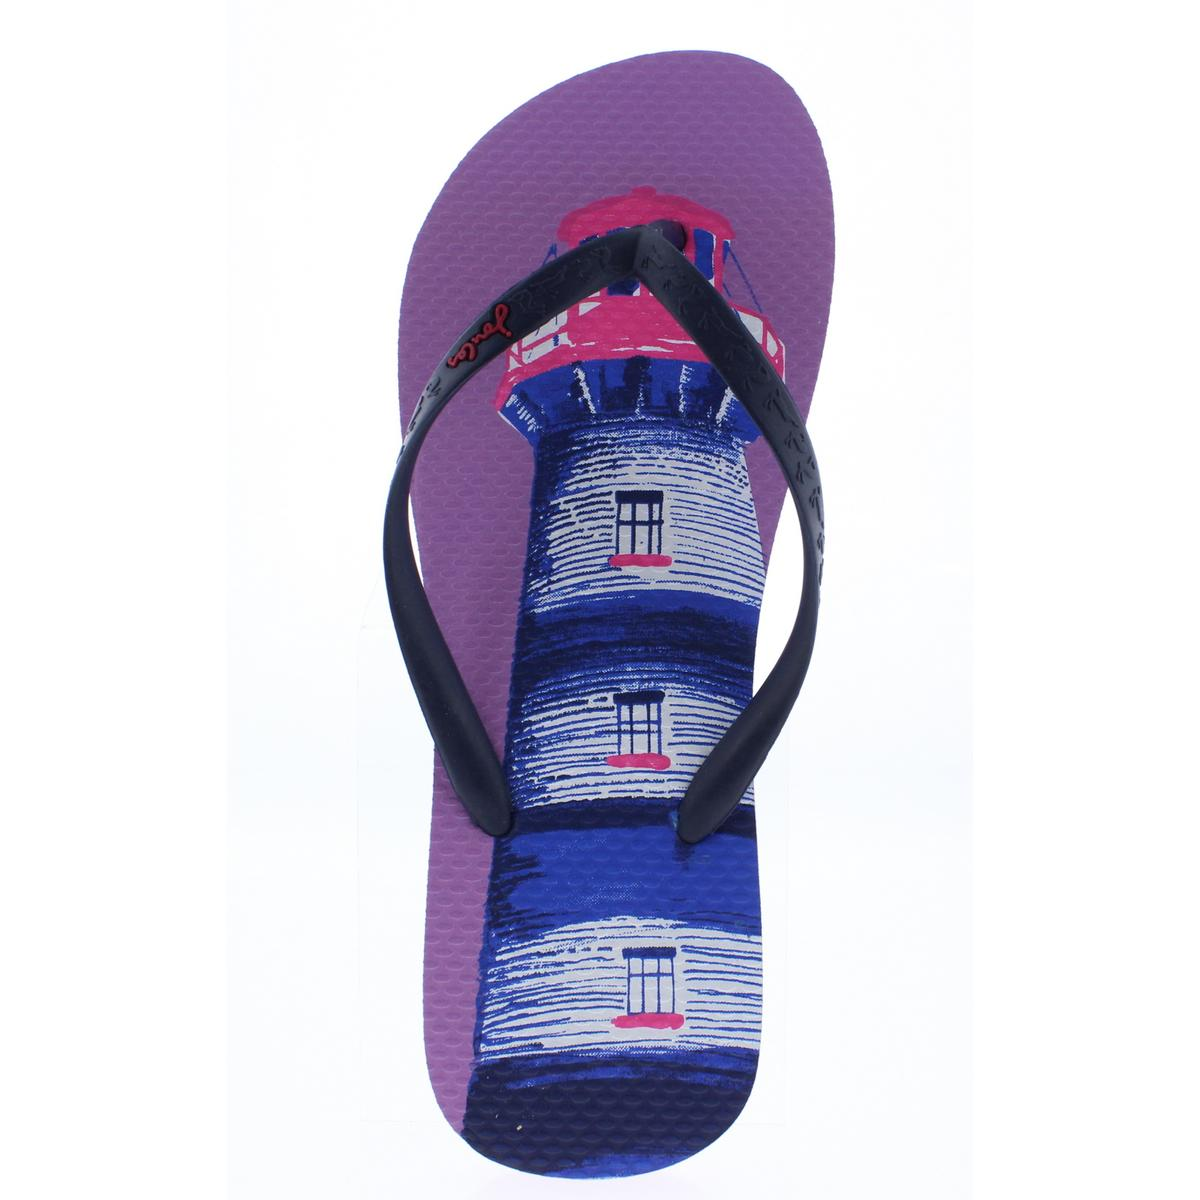 Joules-Womens-Sandy-Thong-Textured-Sandals-Flip-Flops-Shoes-BHFO-0205 thumbnail 8